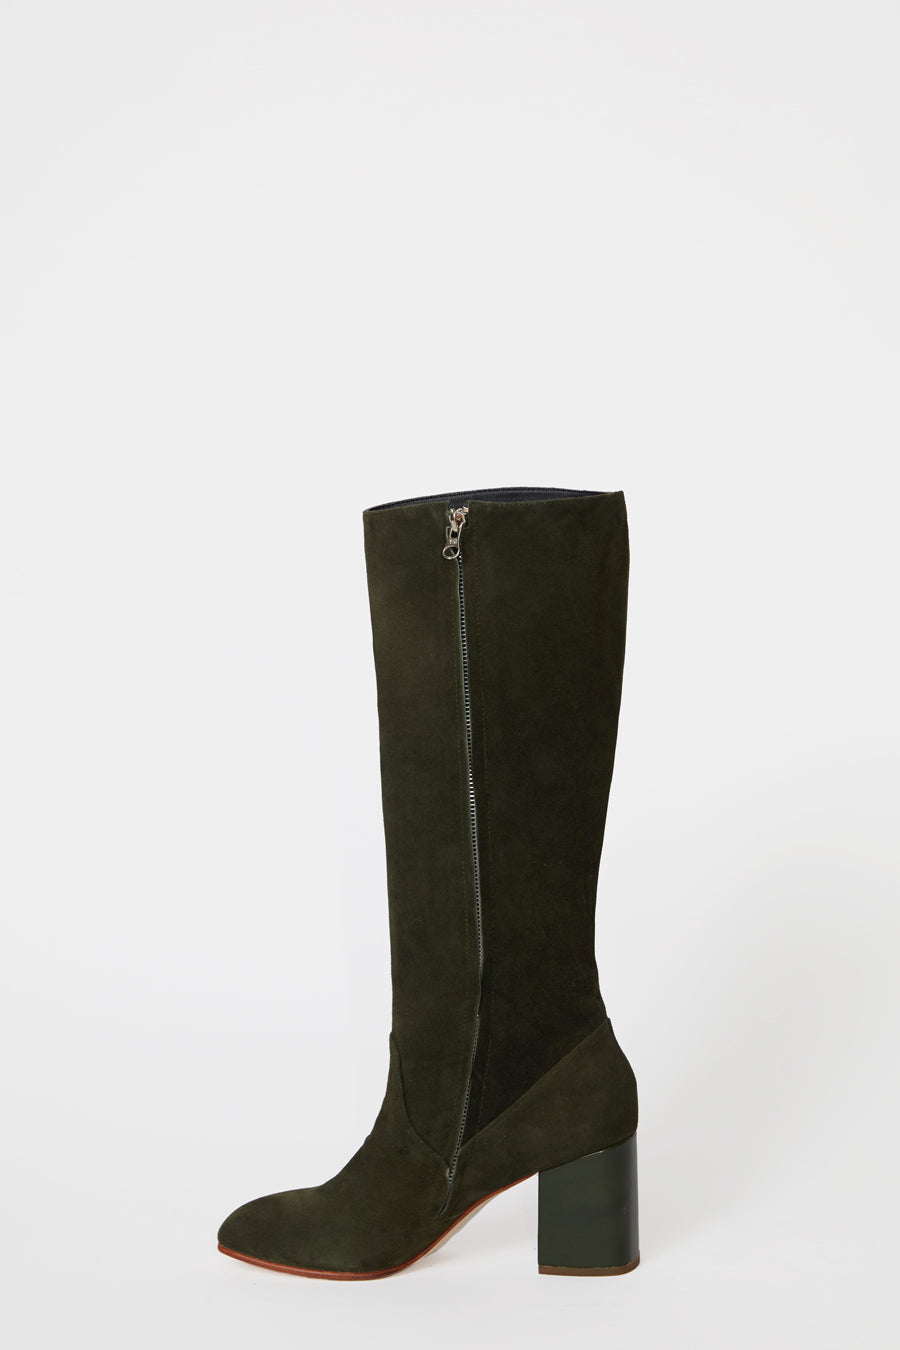 No.6 Sloan Knee High Boot in Pine / Bottle